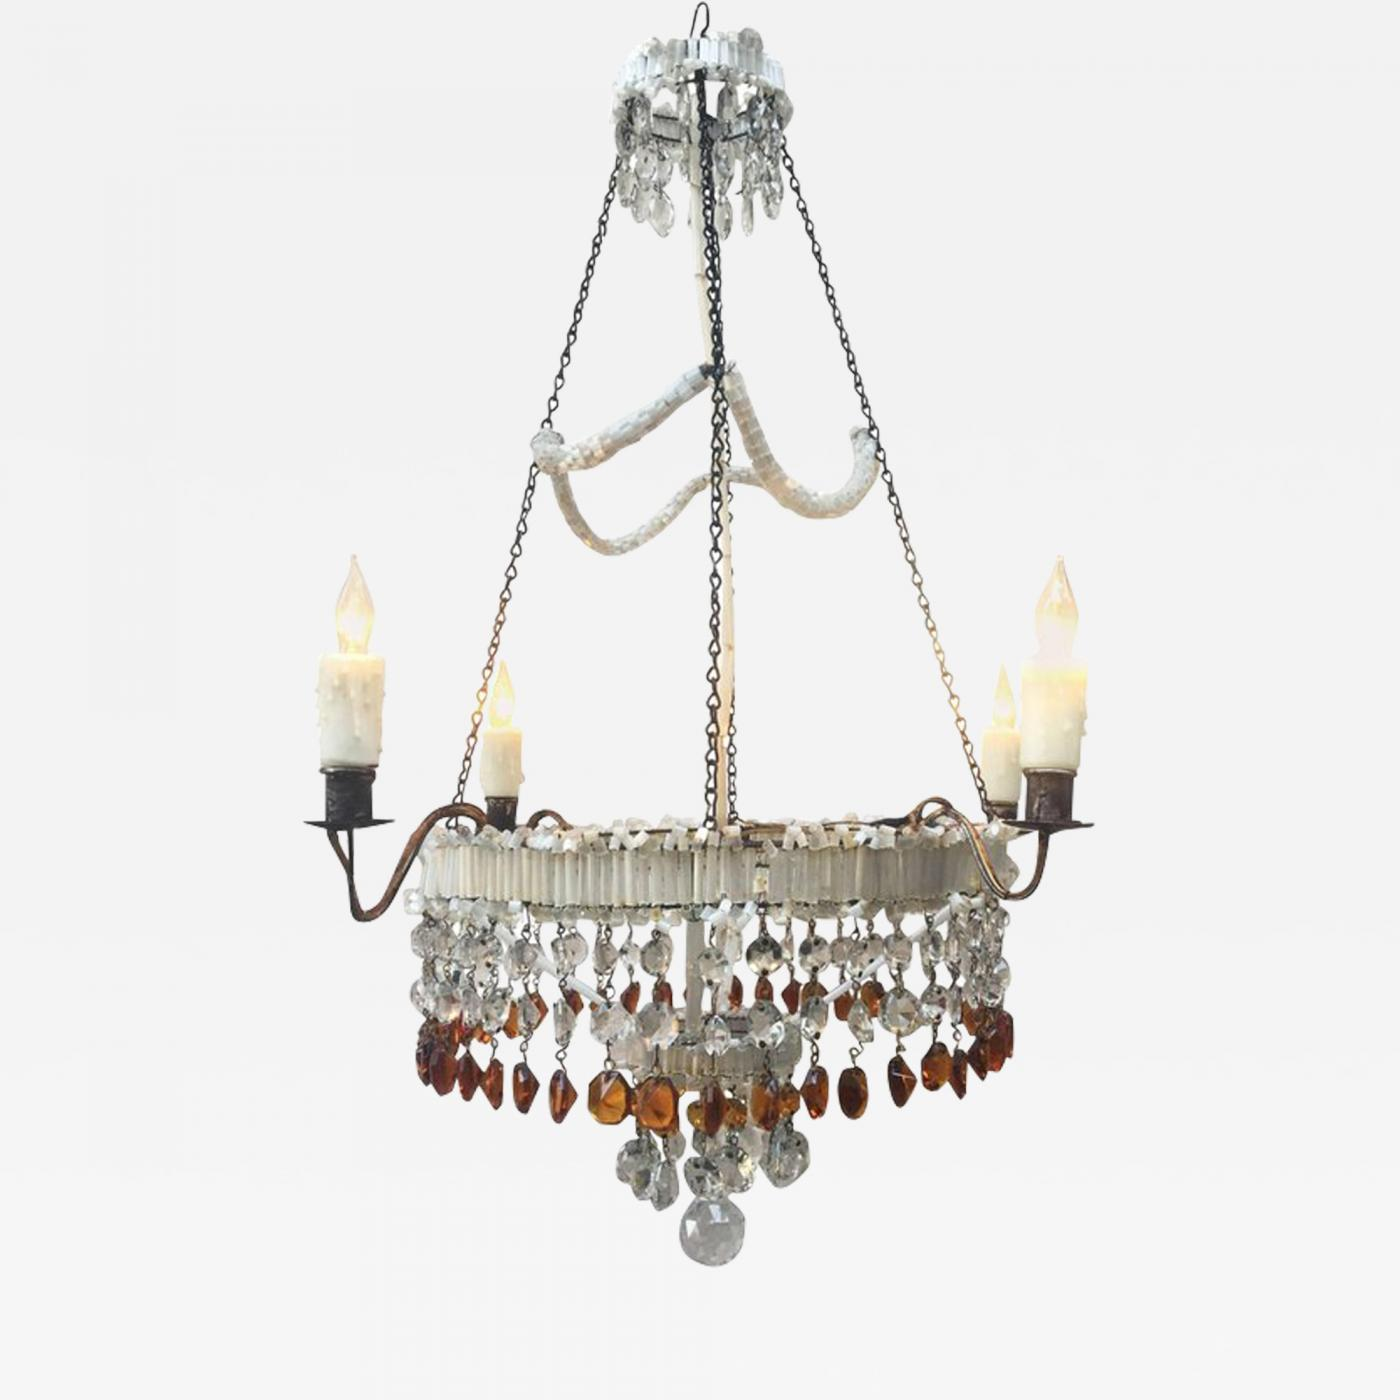 19th century italian empire venetian opaline glass and amber crystal listings furniture lighting chandeliers and pendants aloadofball Images